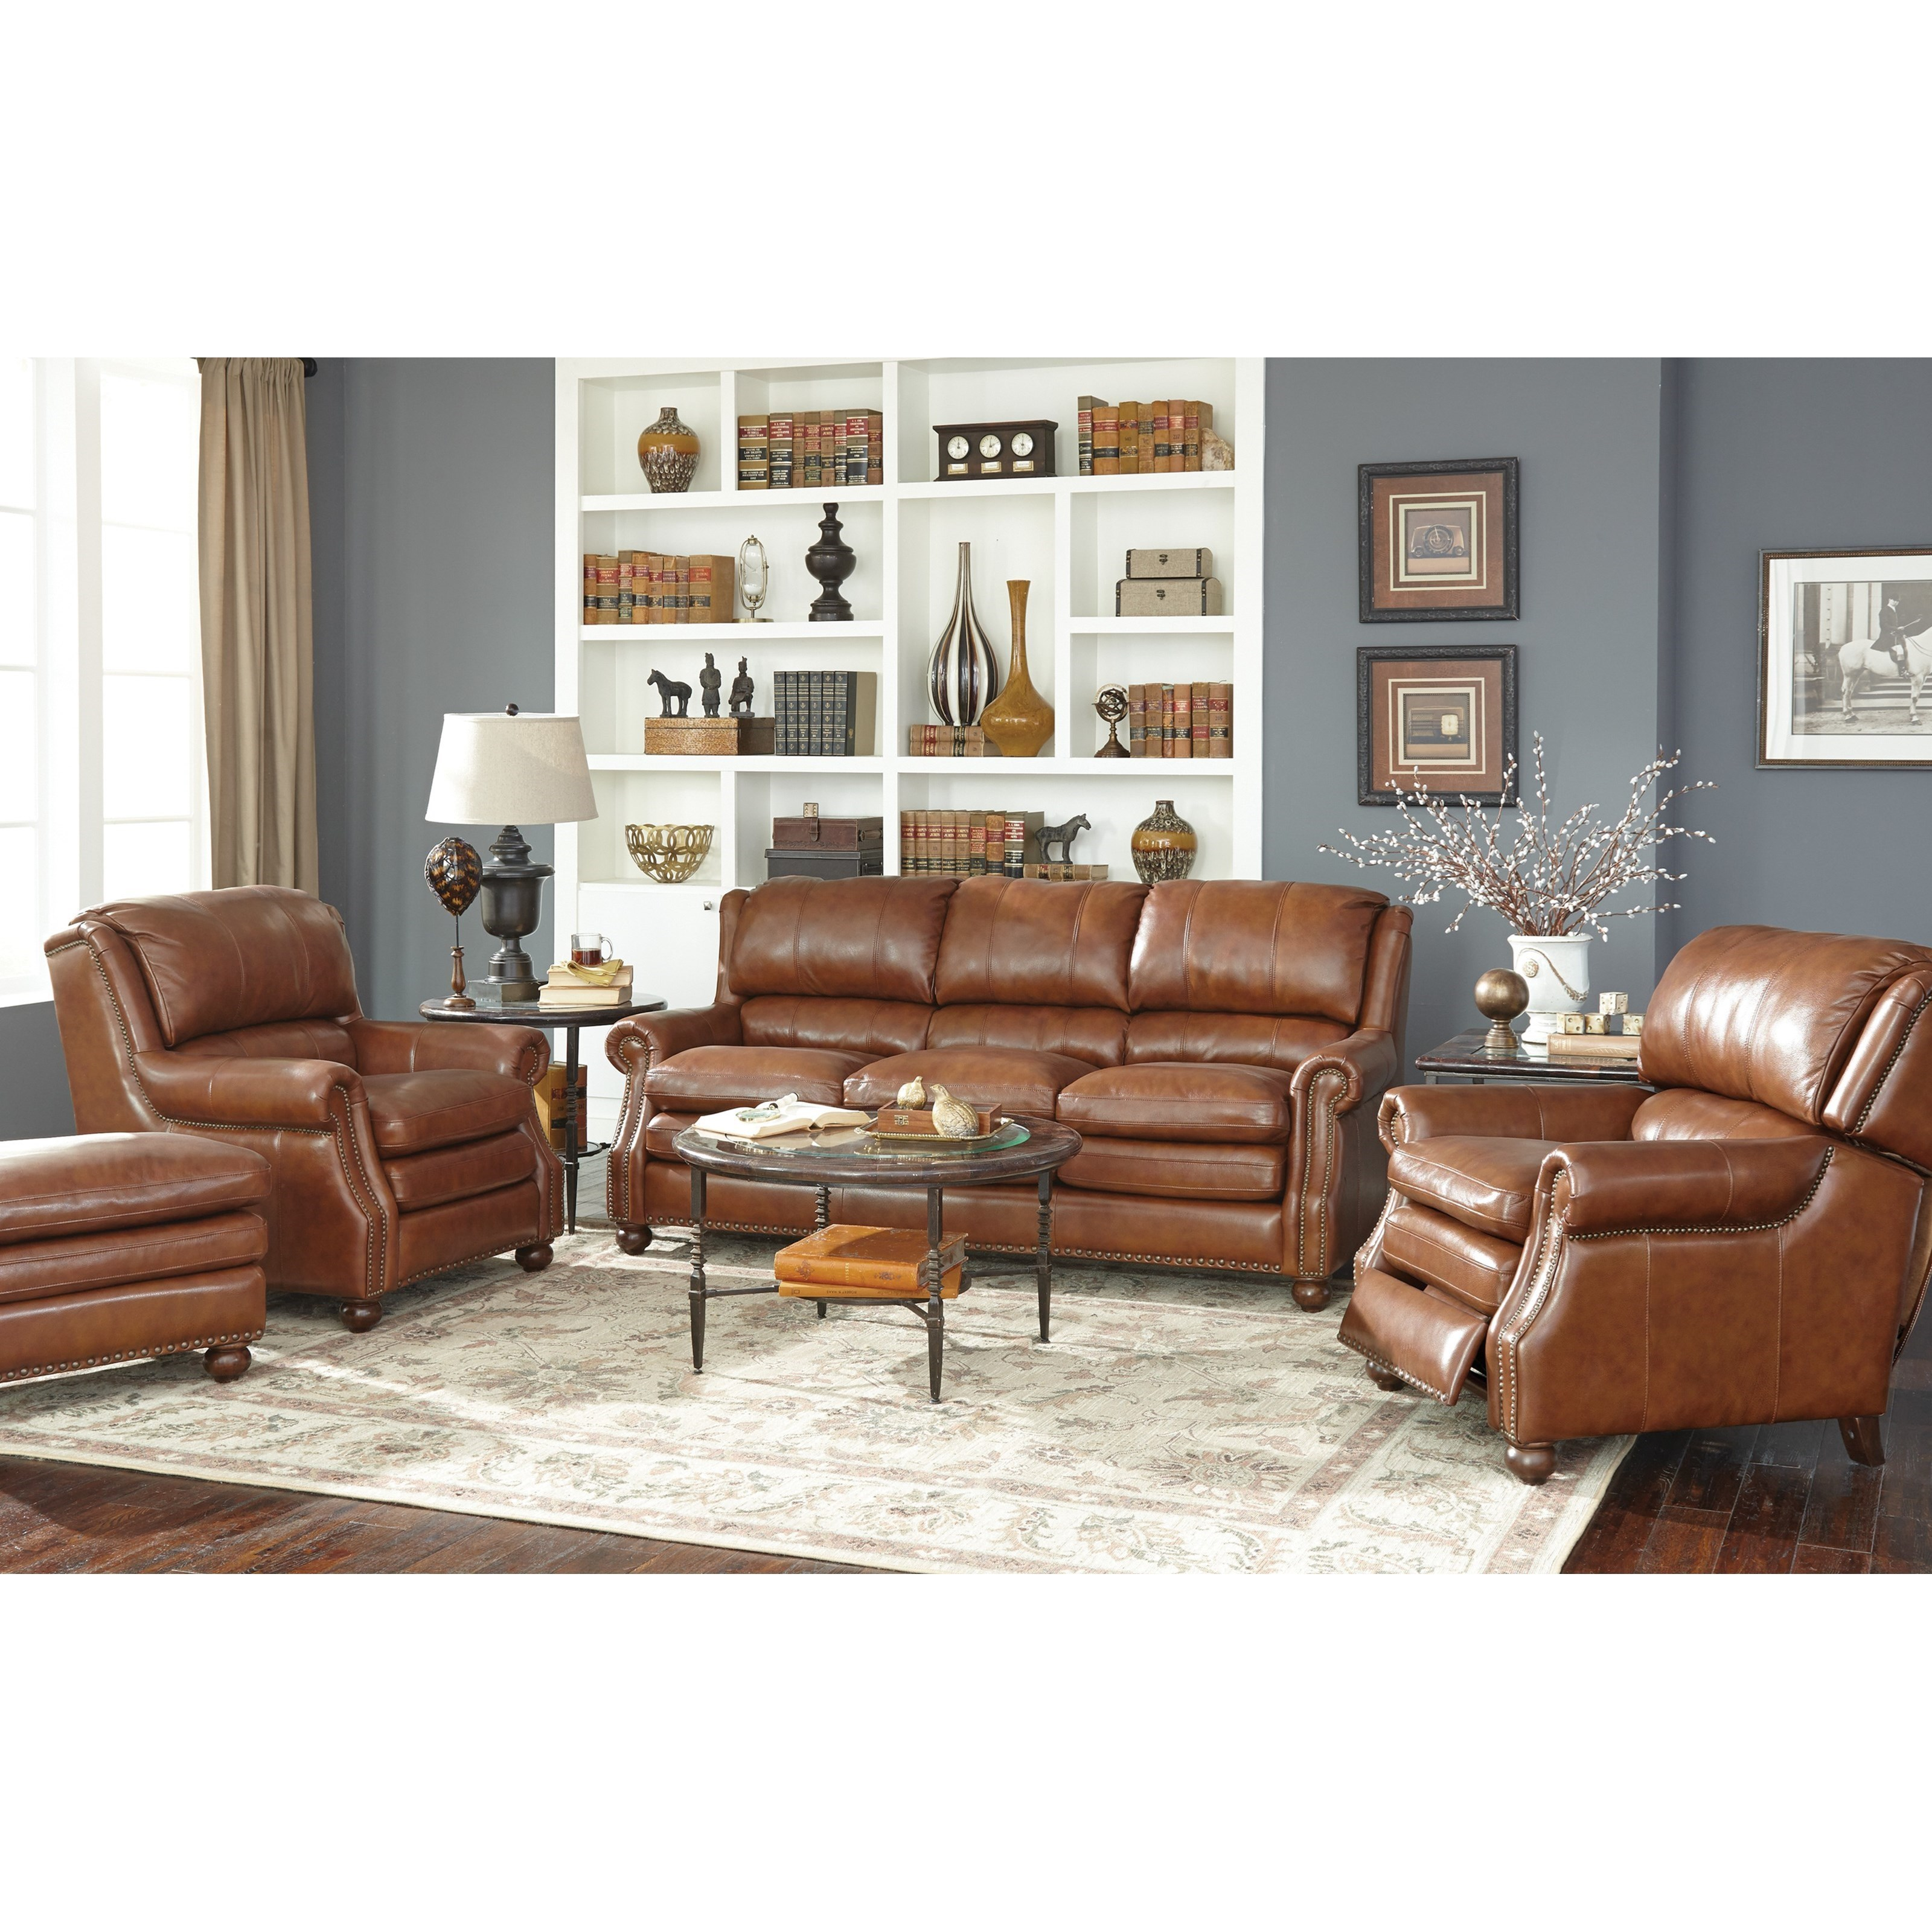 Craftmaster L1646 Traditional Leather Sofa With Bustle Back And Nailhead  Trim